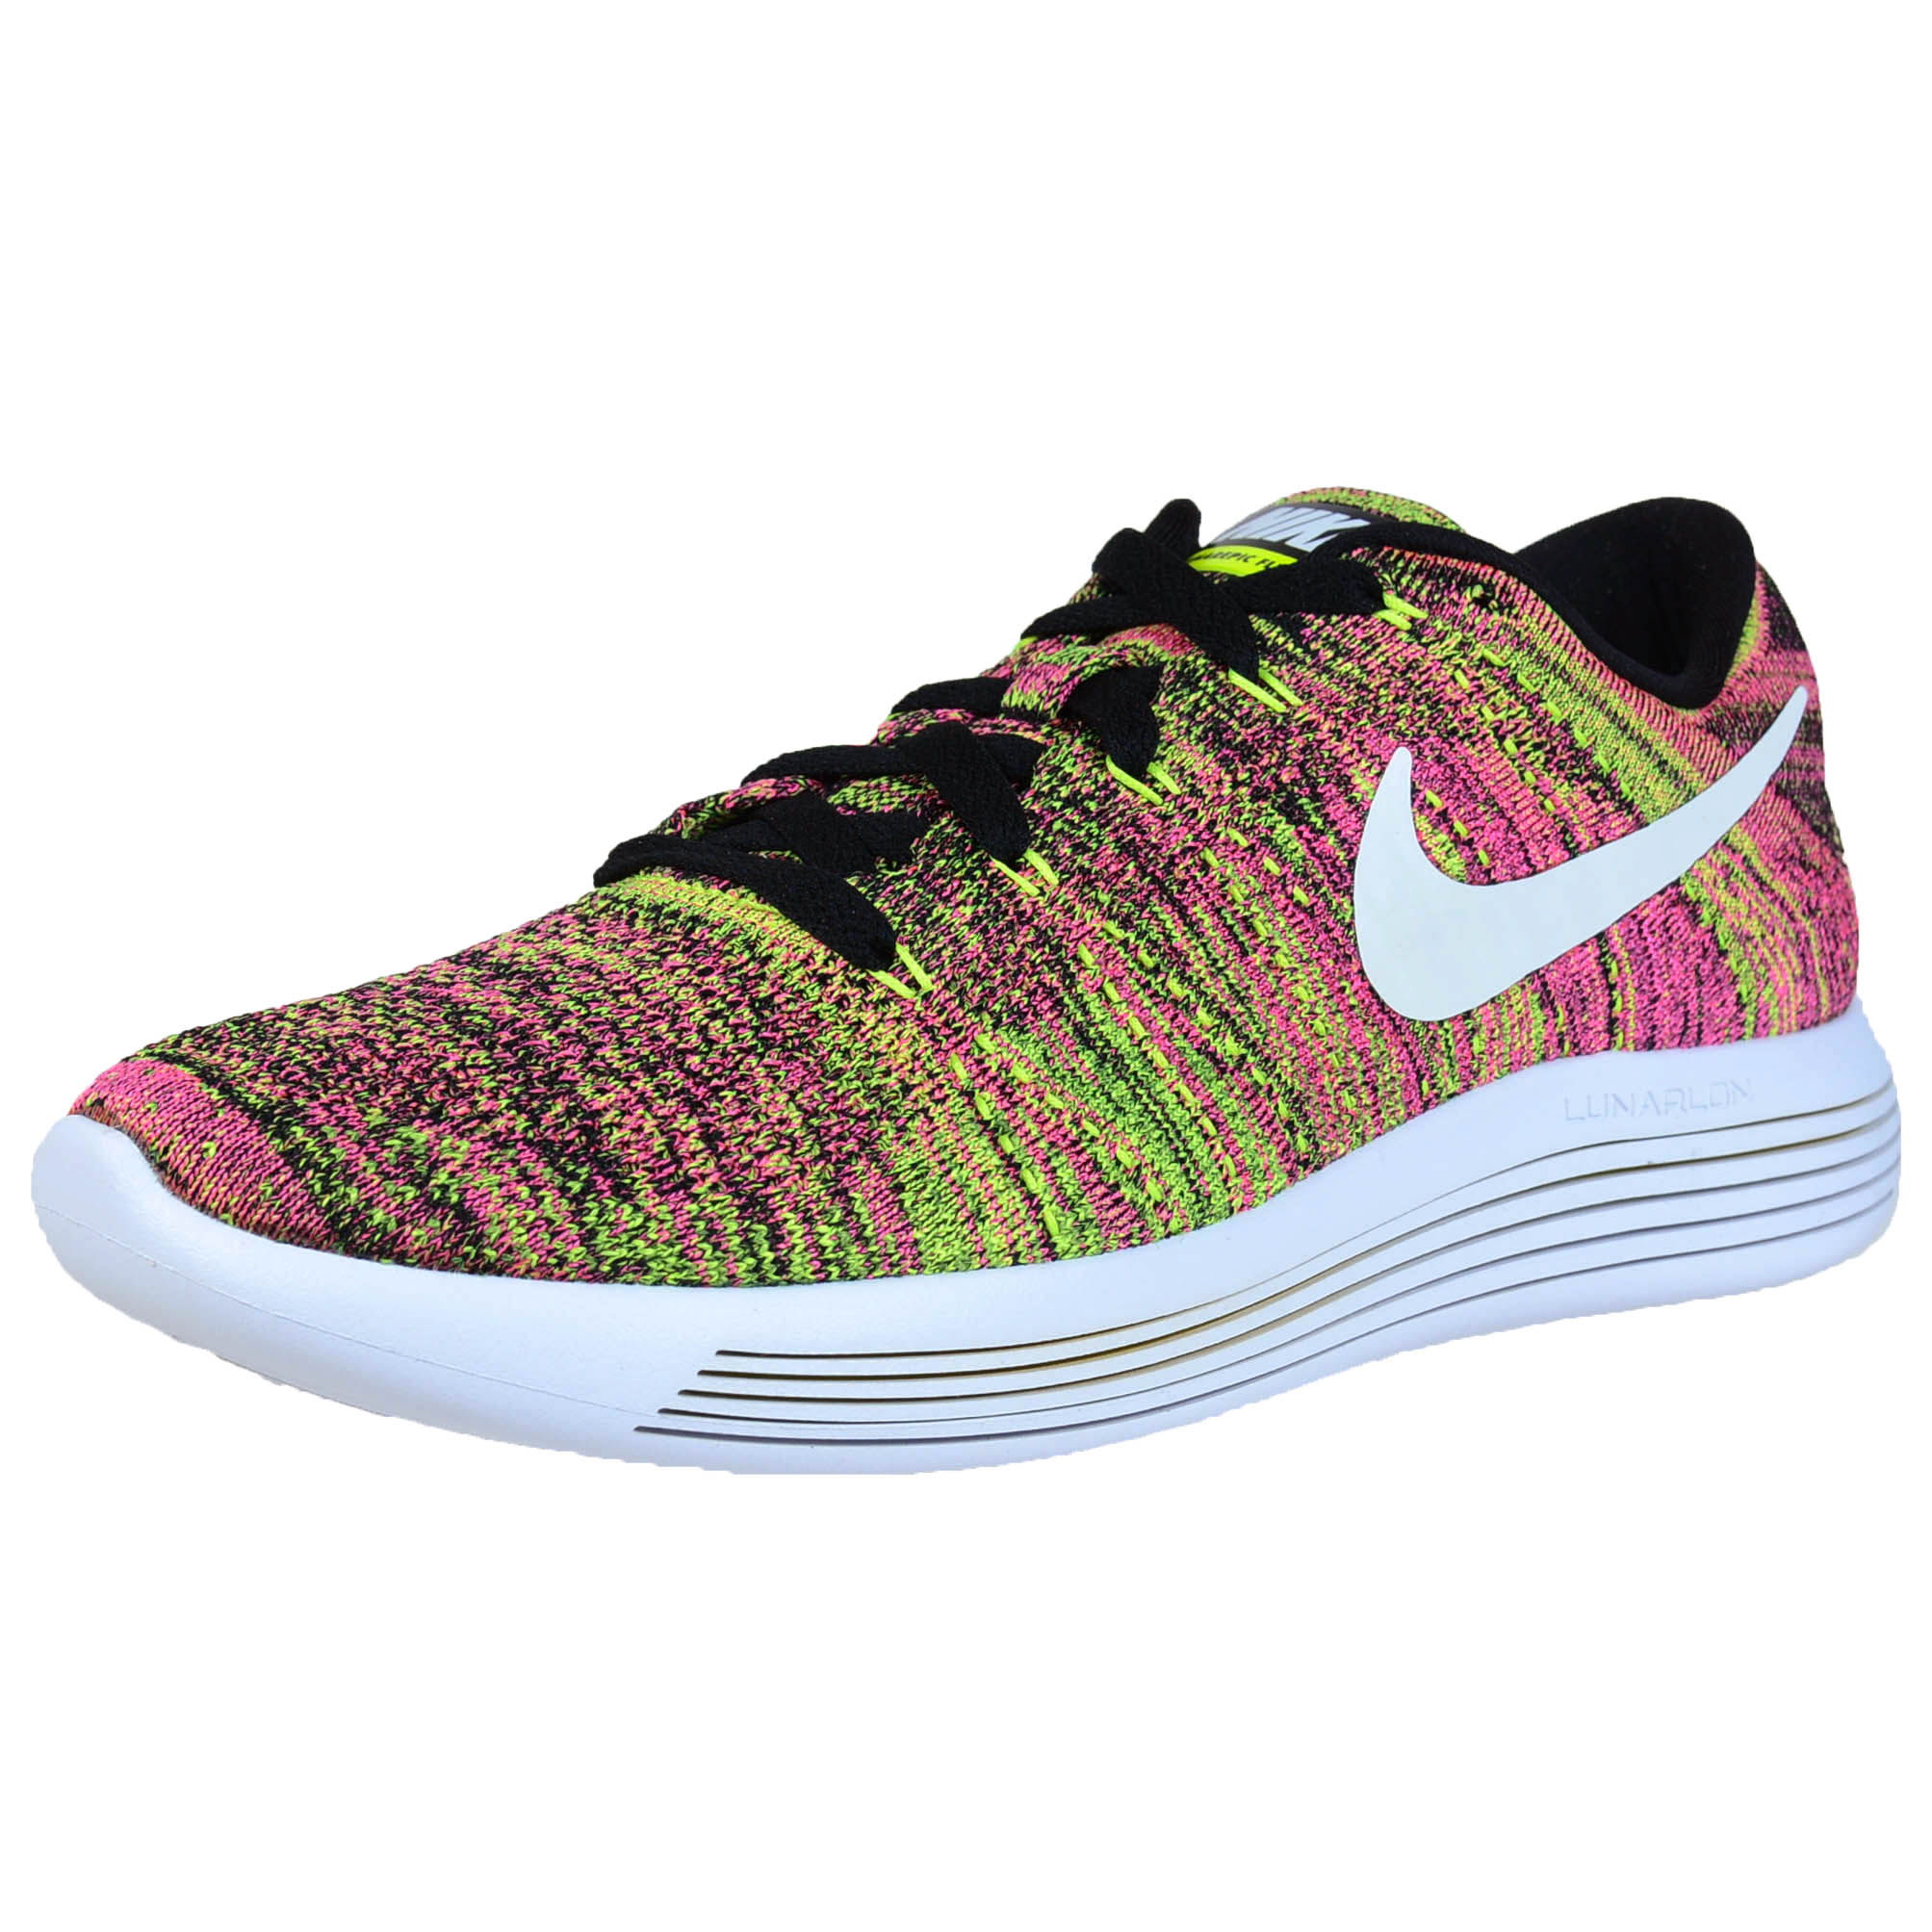 c5d26db4d781 ... where to buy nike nike lunarepic low flyknit oc unlimited running shoes  multi color 844862 999